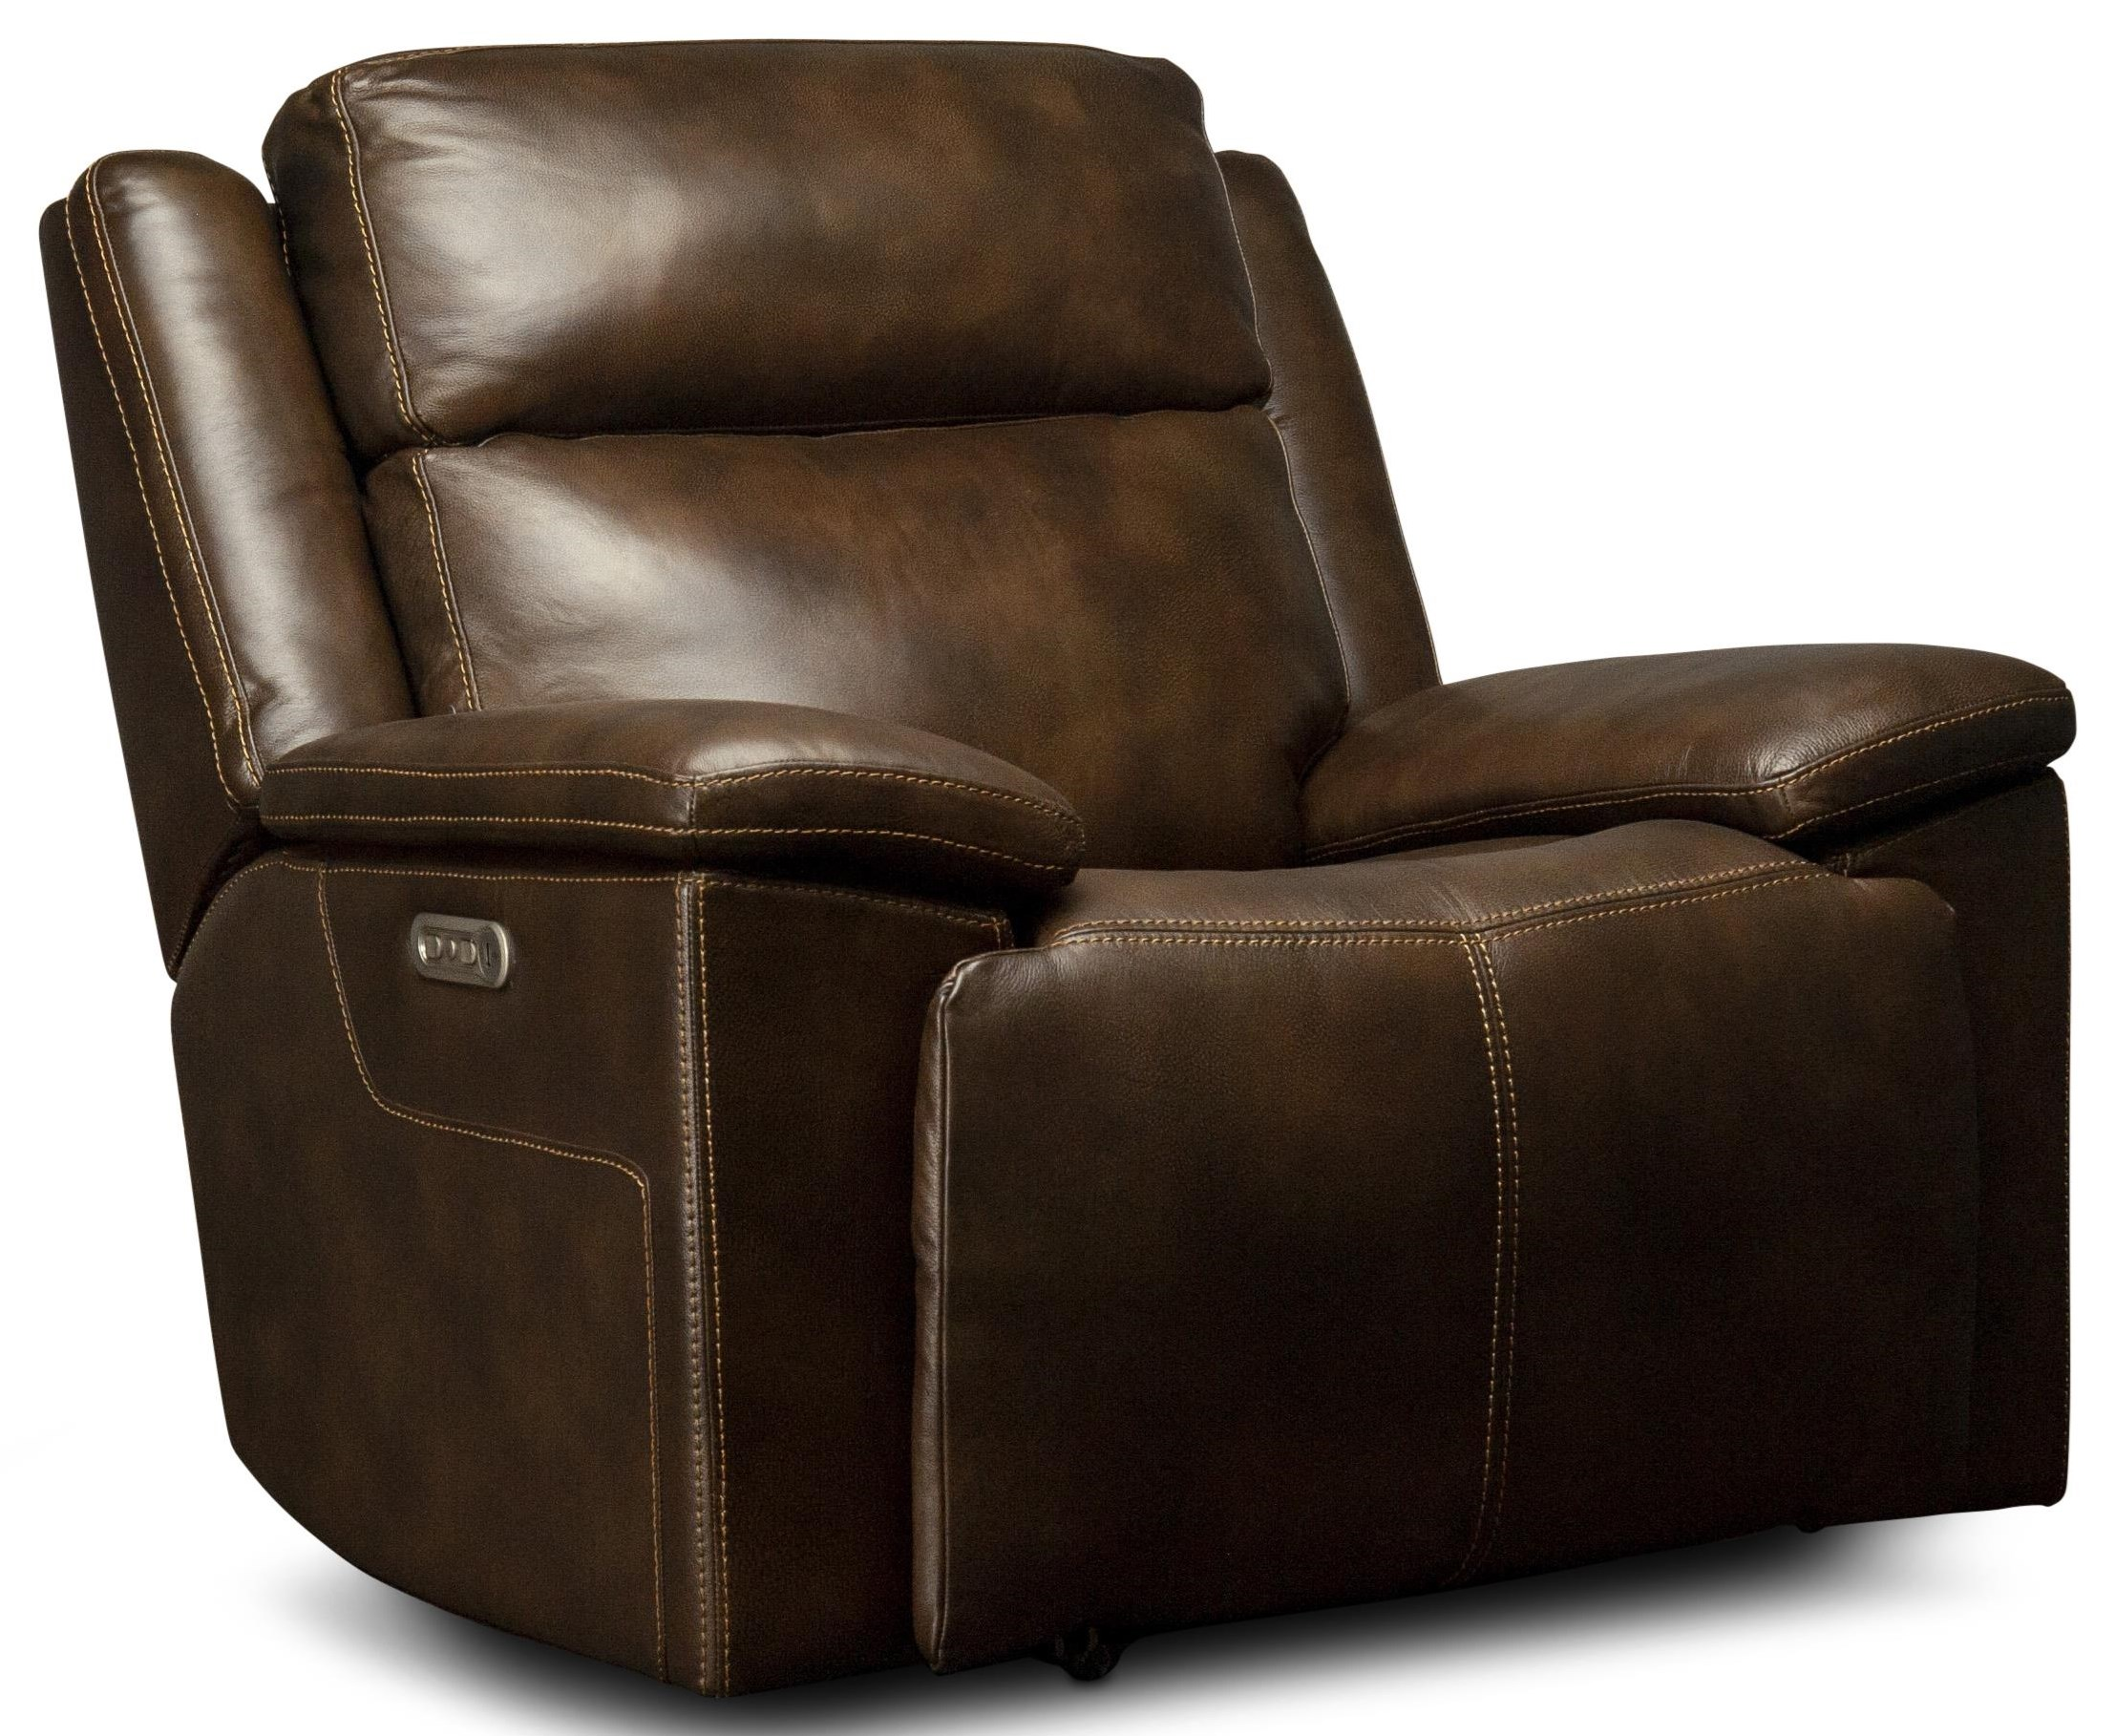 Calista Calista Power Leather Match Glider Recliner by Flexsteel Wynwood Collection at Morris Home